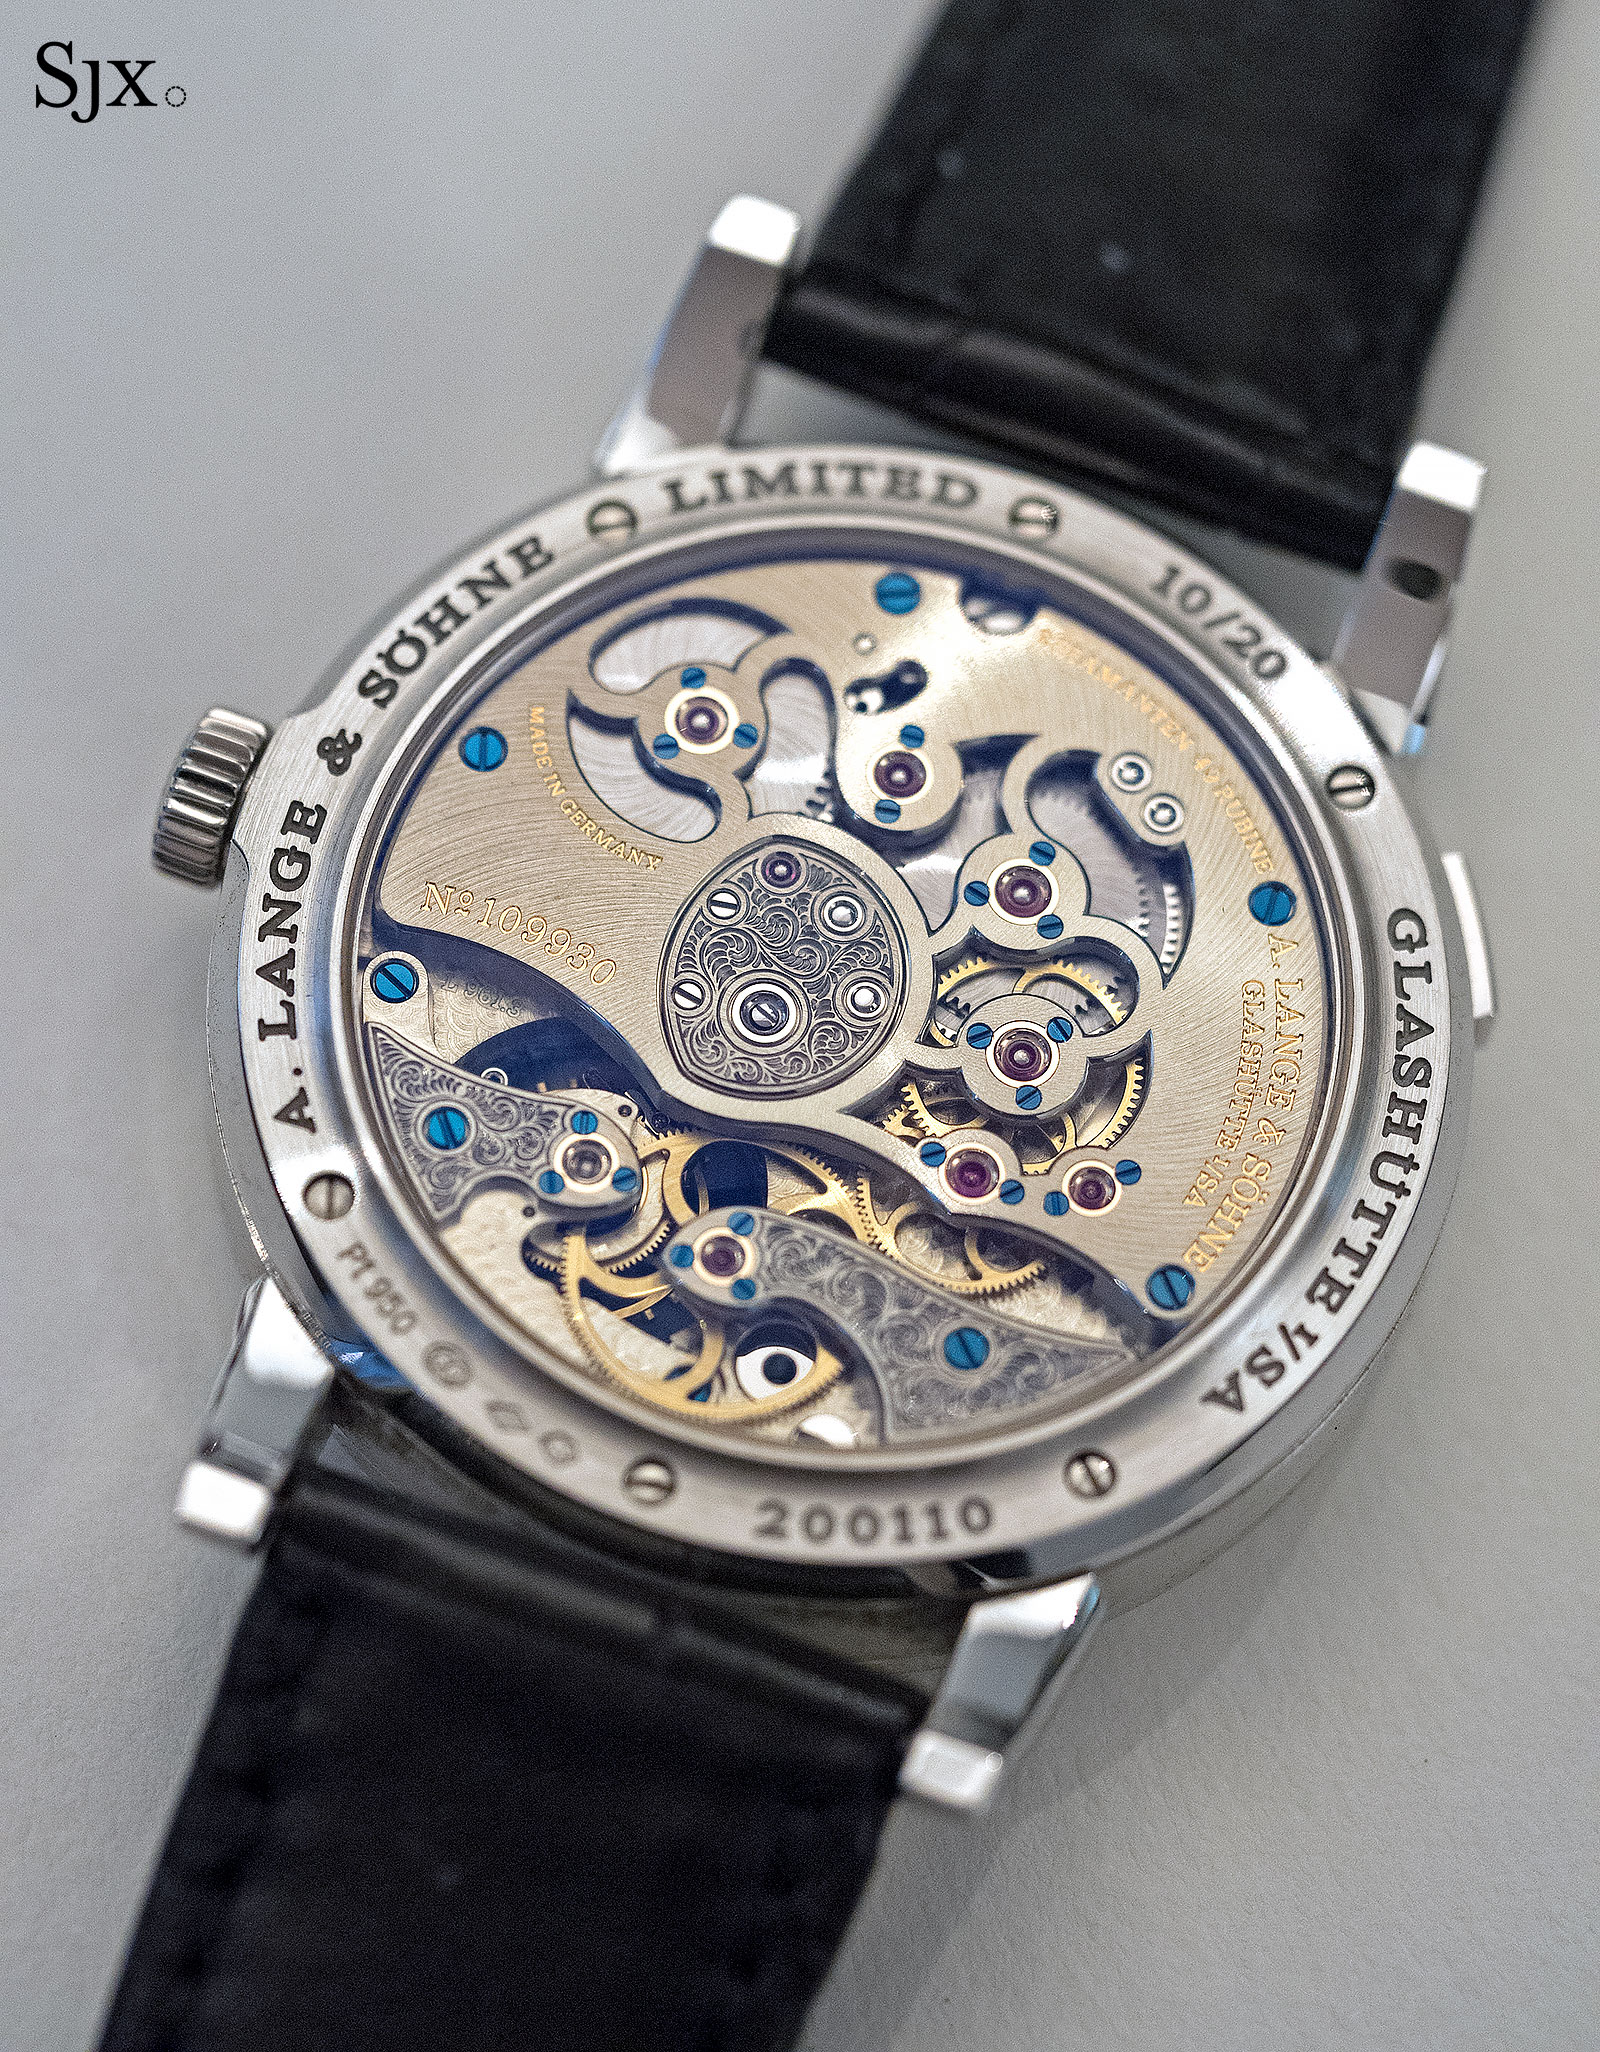 Lange 1 Tourbillon Handwerkskunst Phillips 3